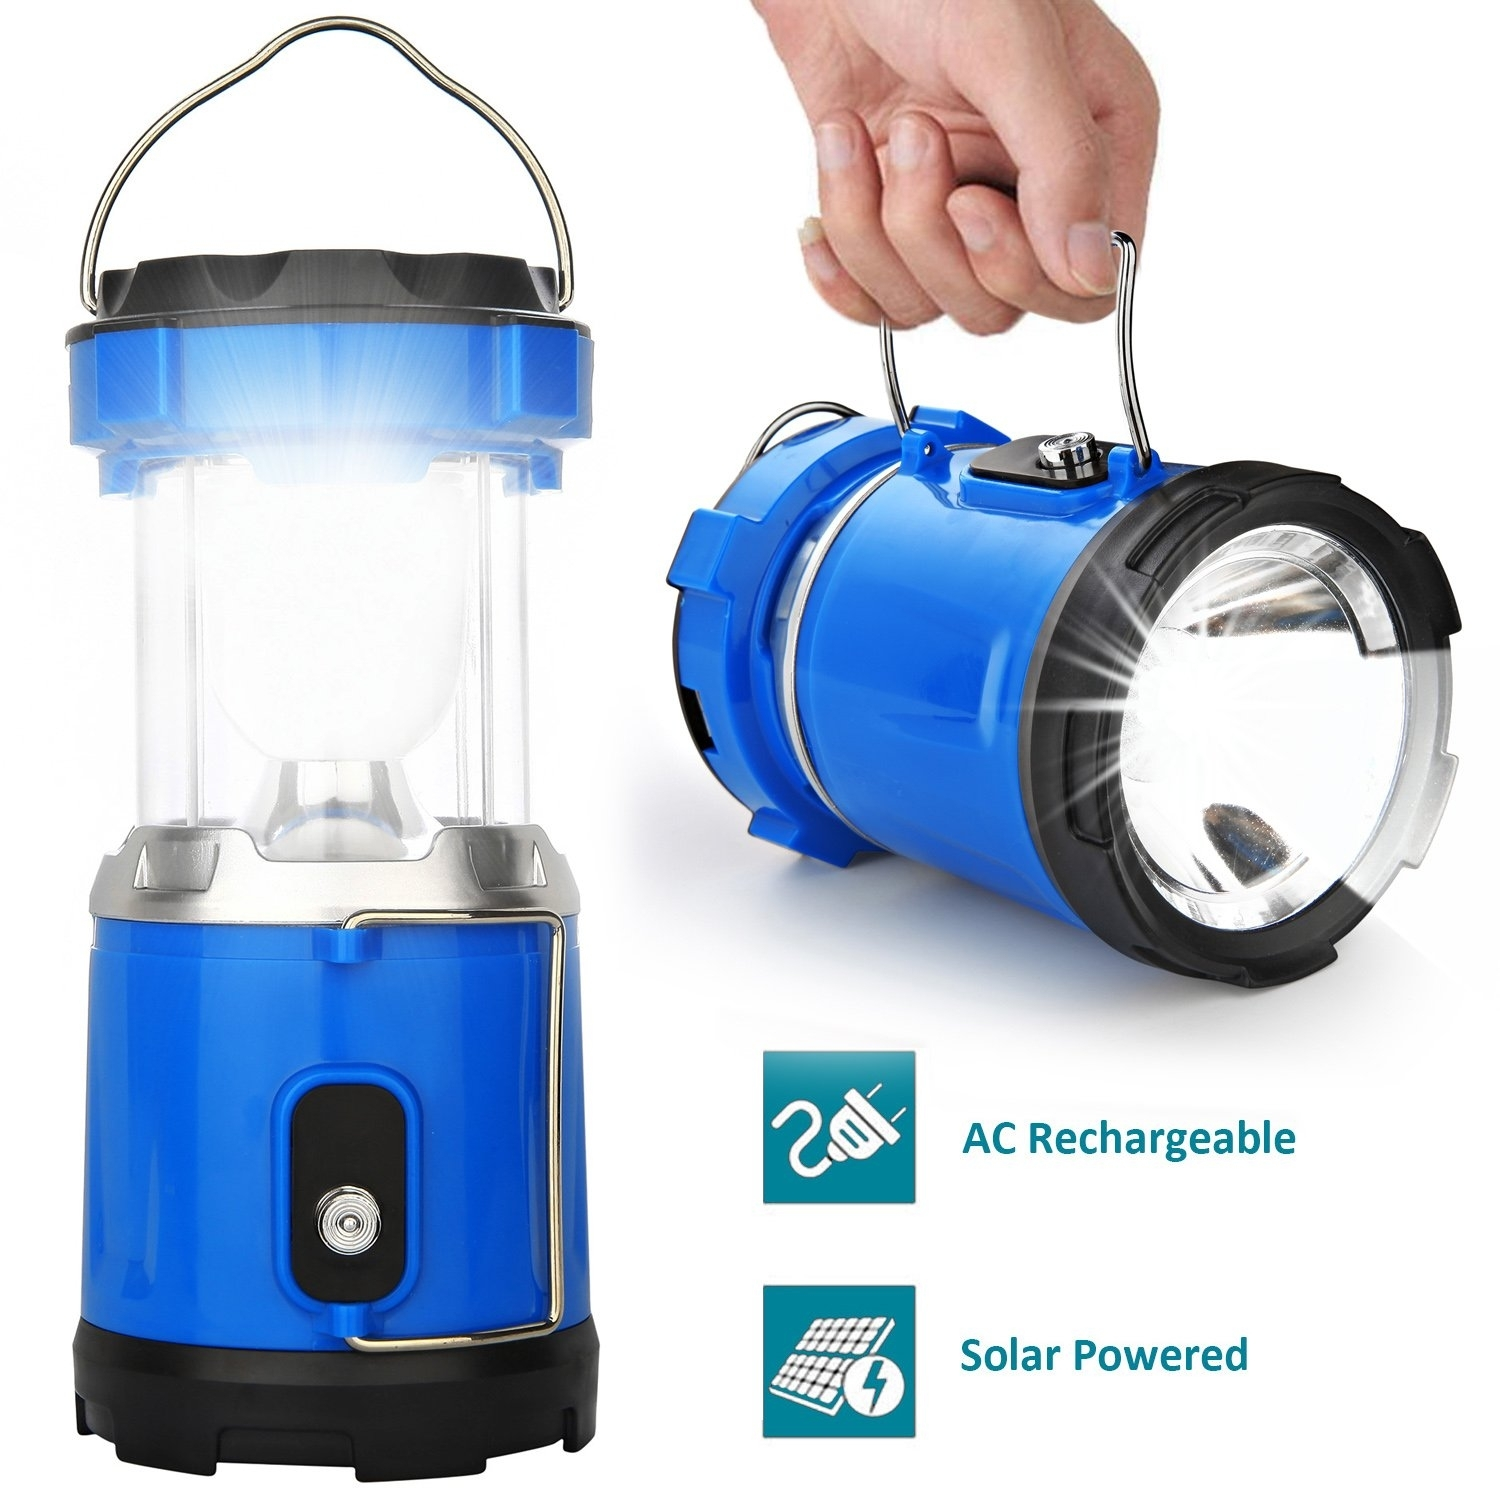 Camping Lantern Light, Iruiyingo Rechargeable Lamp Solar Led intended for Outdoor Rechargeable Lanterns (Image 6 of 20)